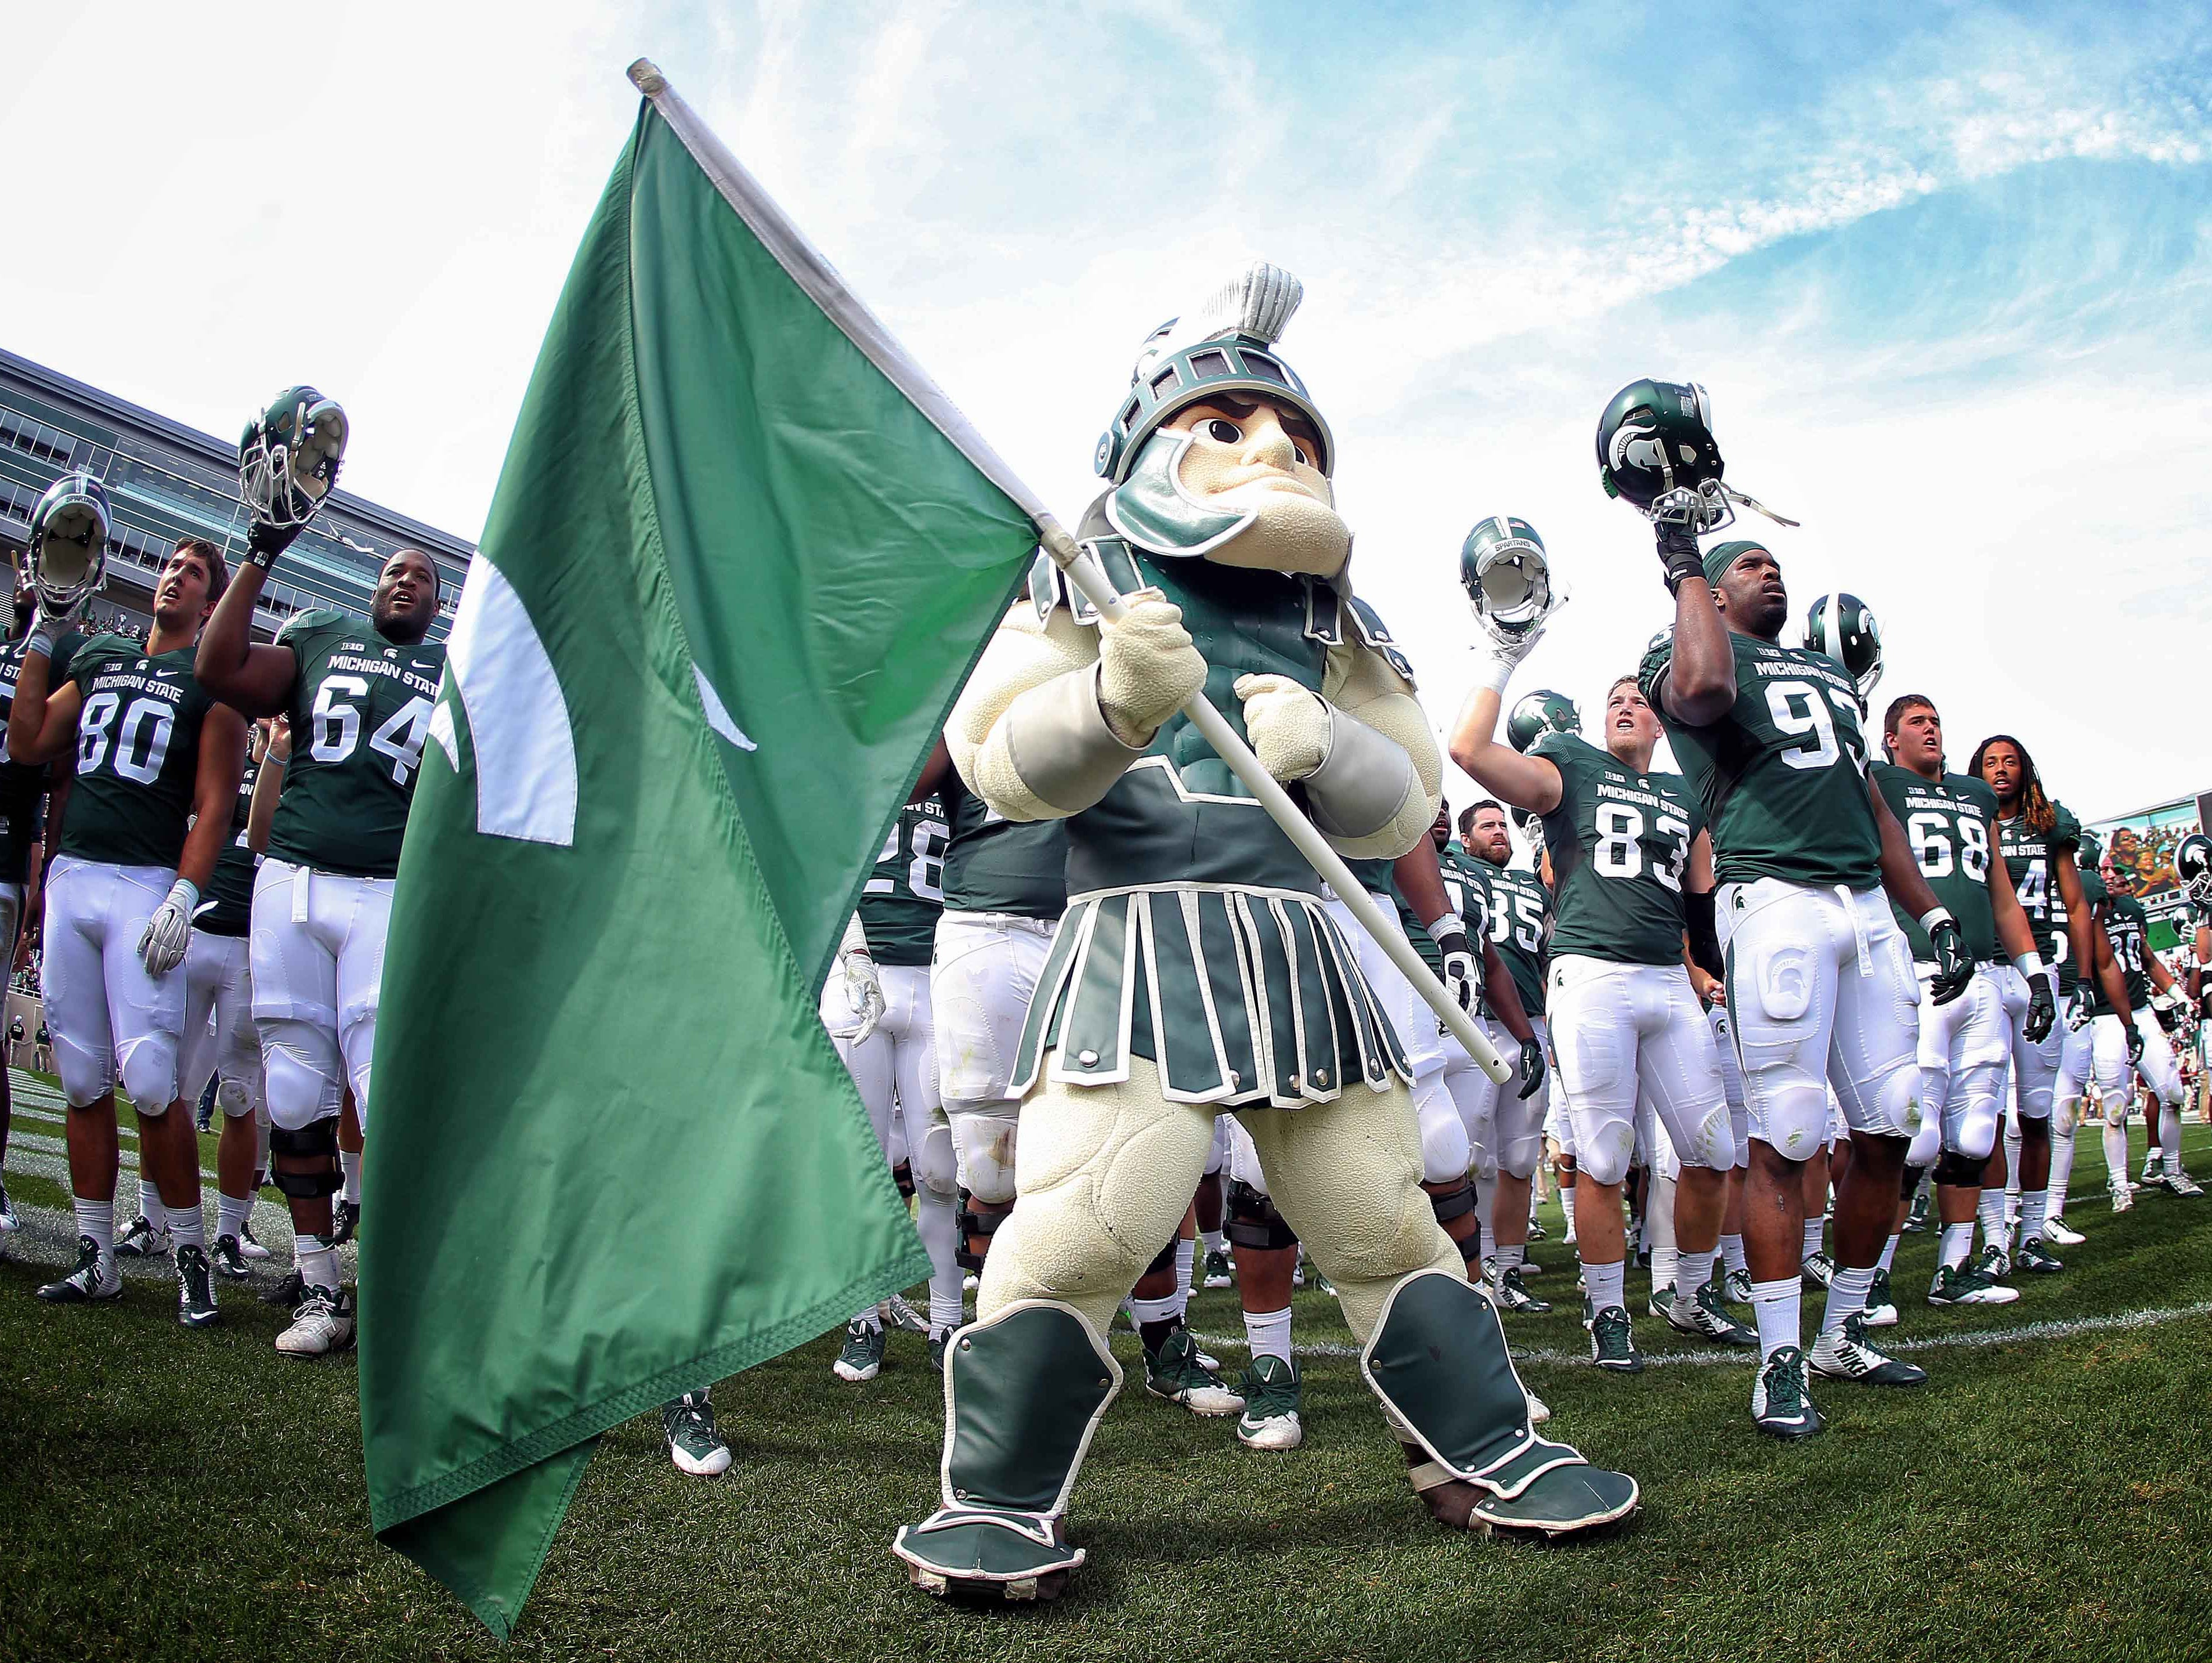 Sparty celebrates a win with the team after a game at Spartan Stadium.